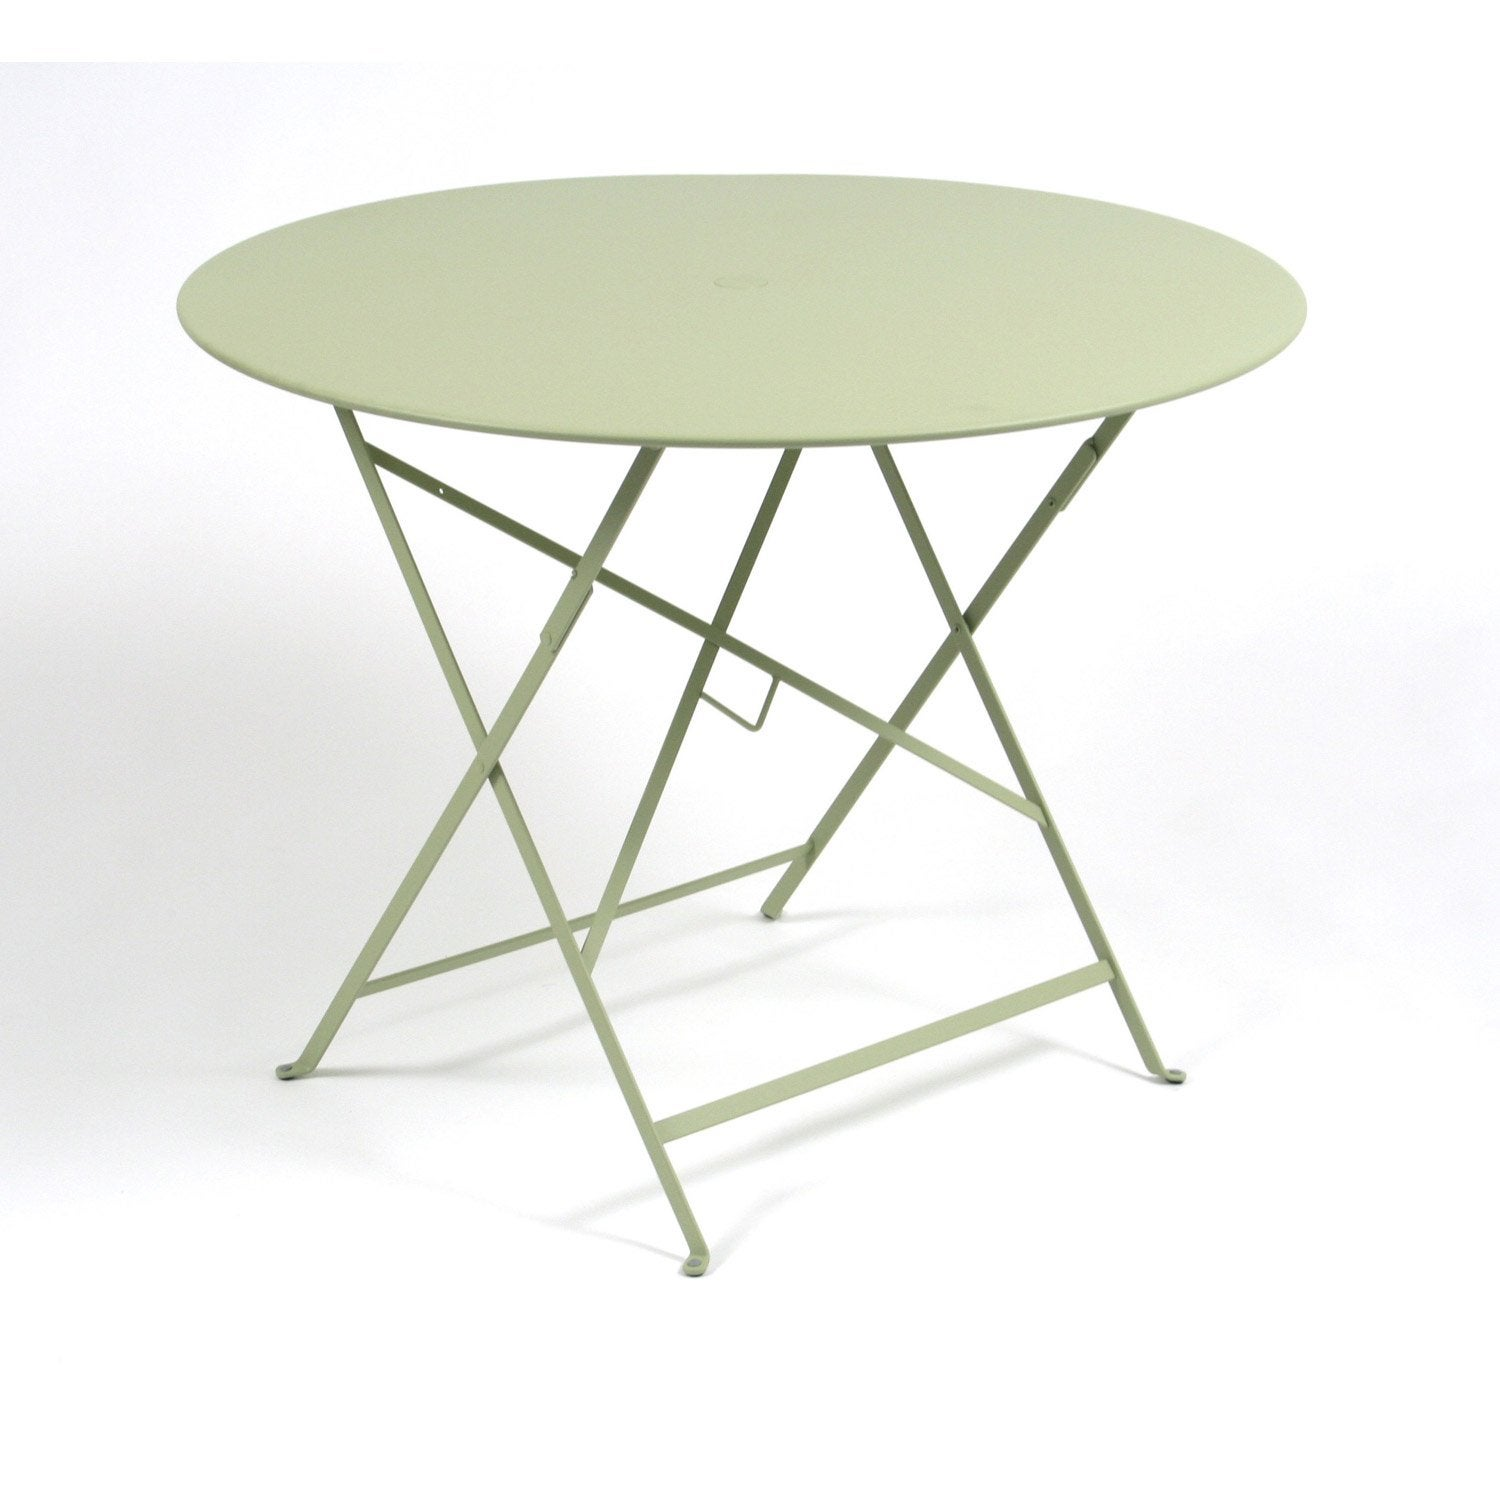 Table de jardin fermob bistro ronde tilleul 4 personnes for Fermob table de jardin